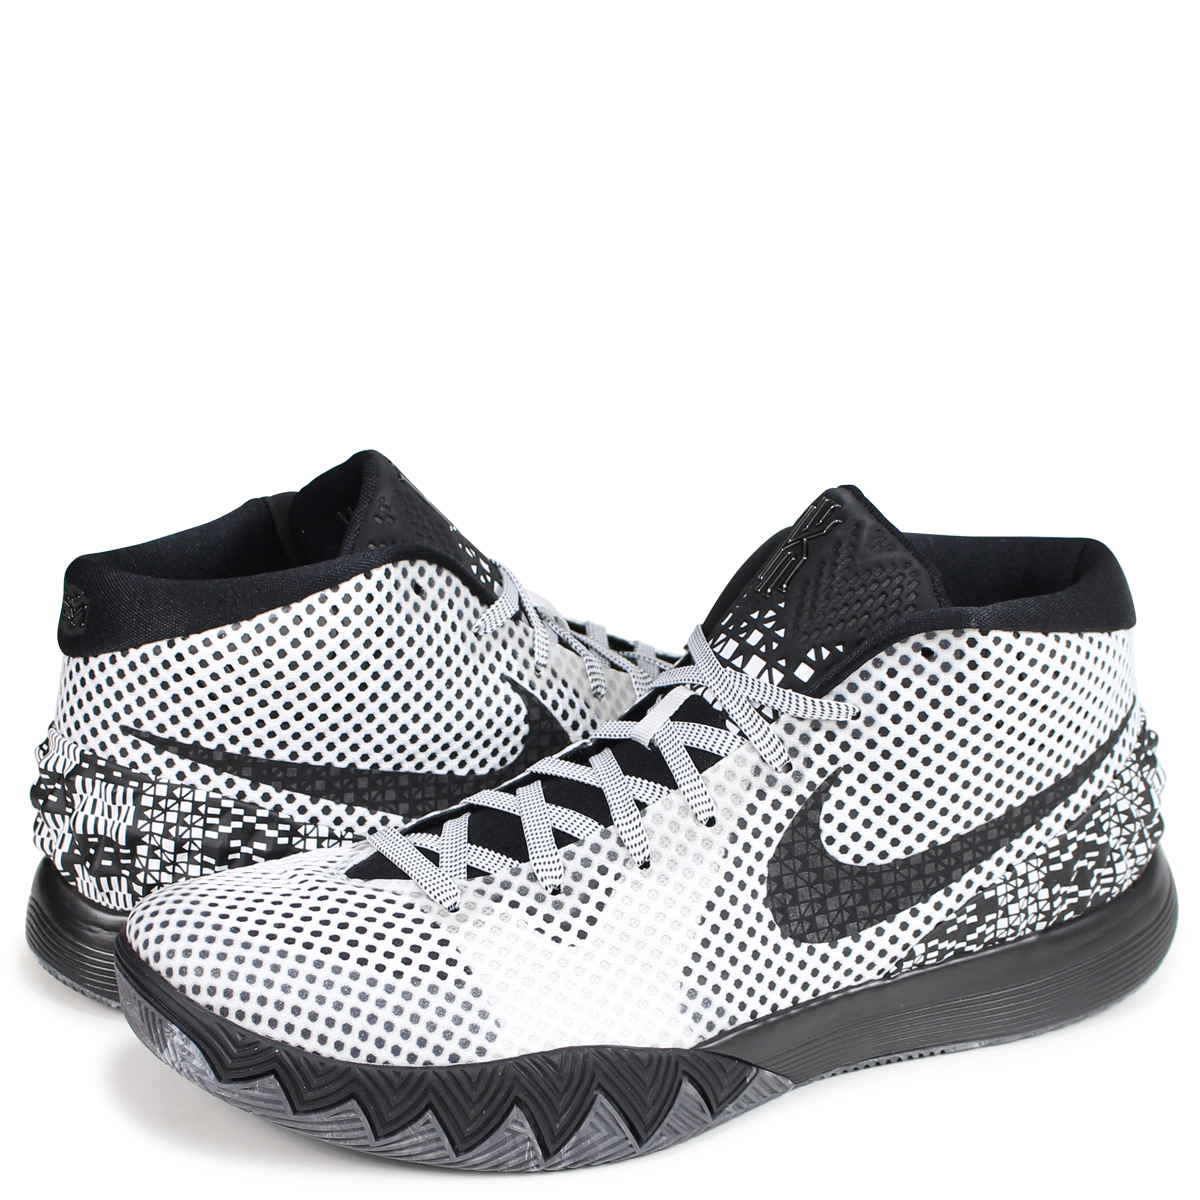 sports shoes abea0 67eb7 NIKE KYRIE 1 BLACK HISTORY MONTH BHM Nike chi Lee 1 sneakers men  718,820-100 ...